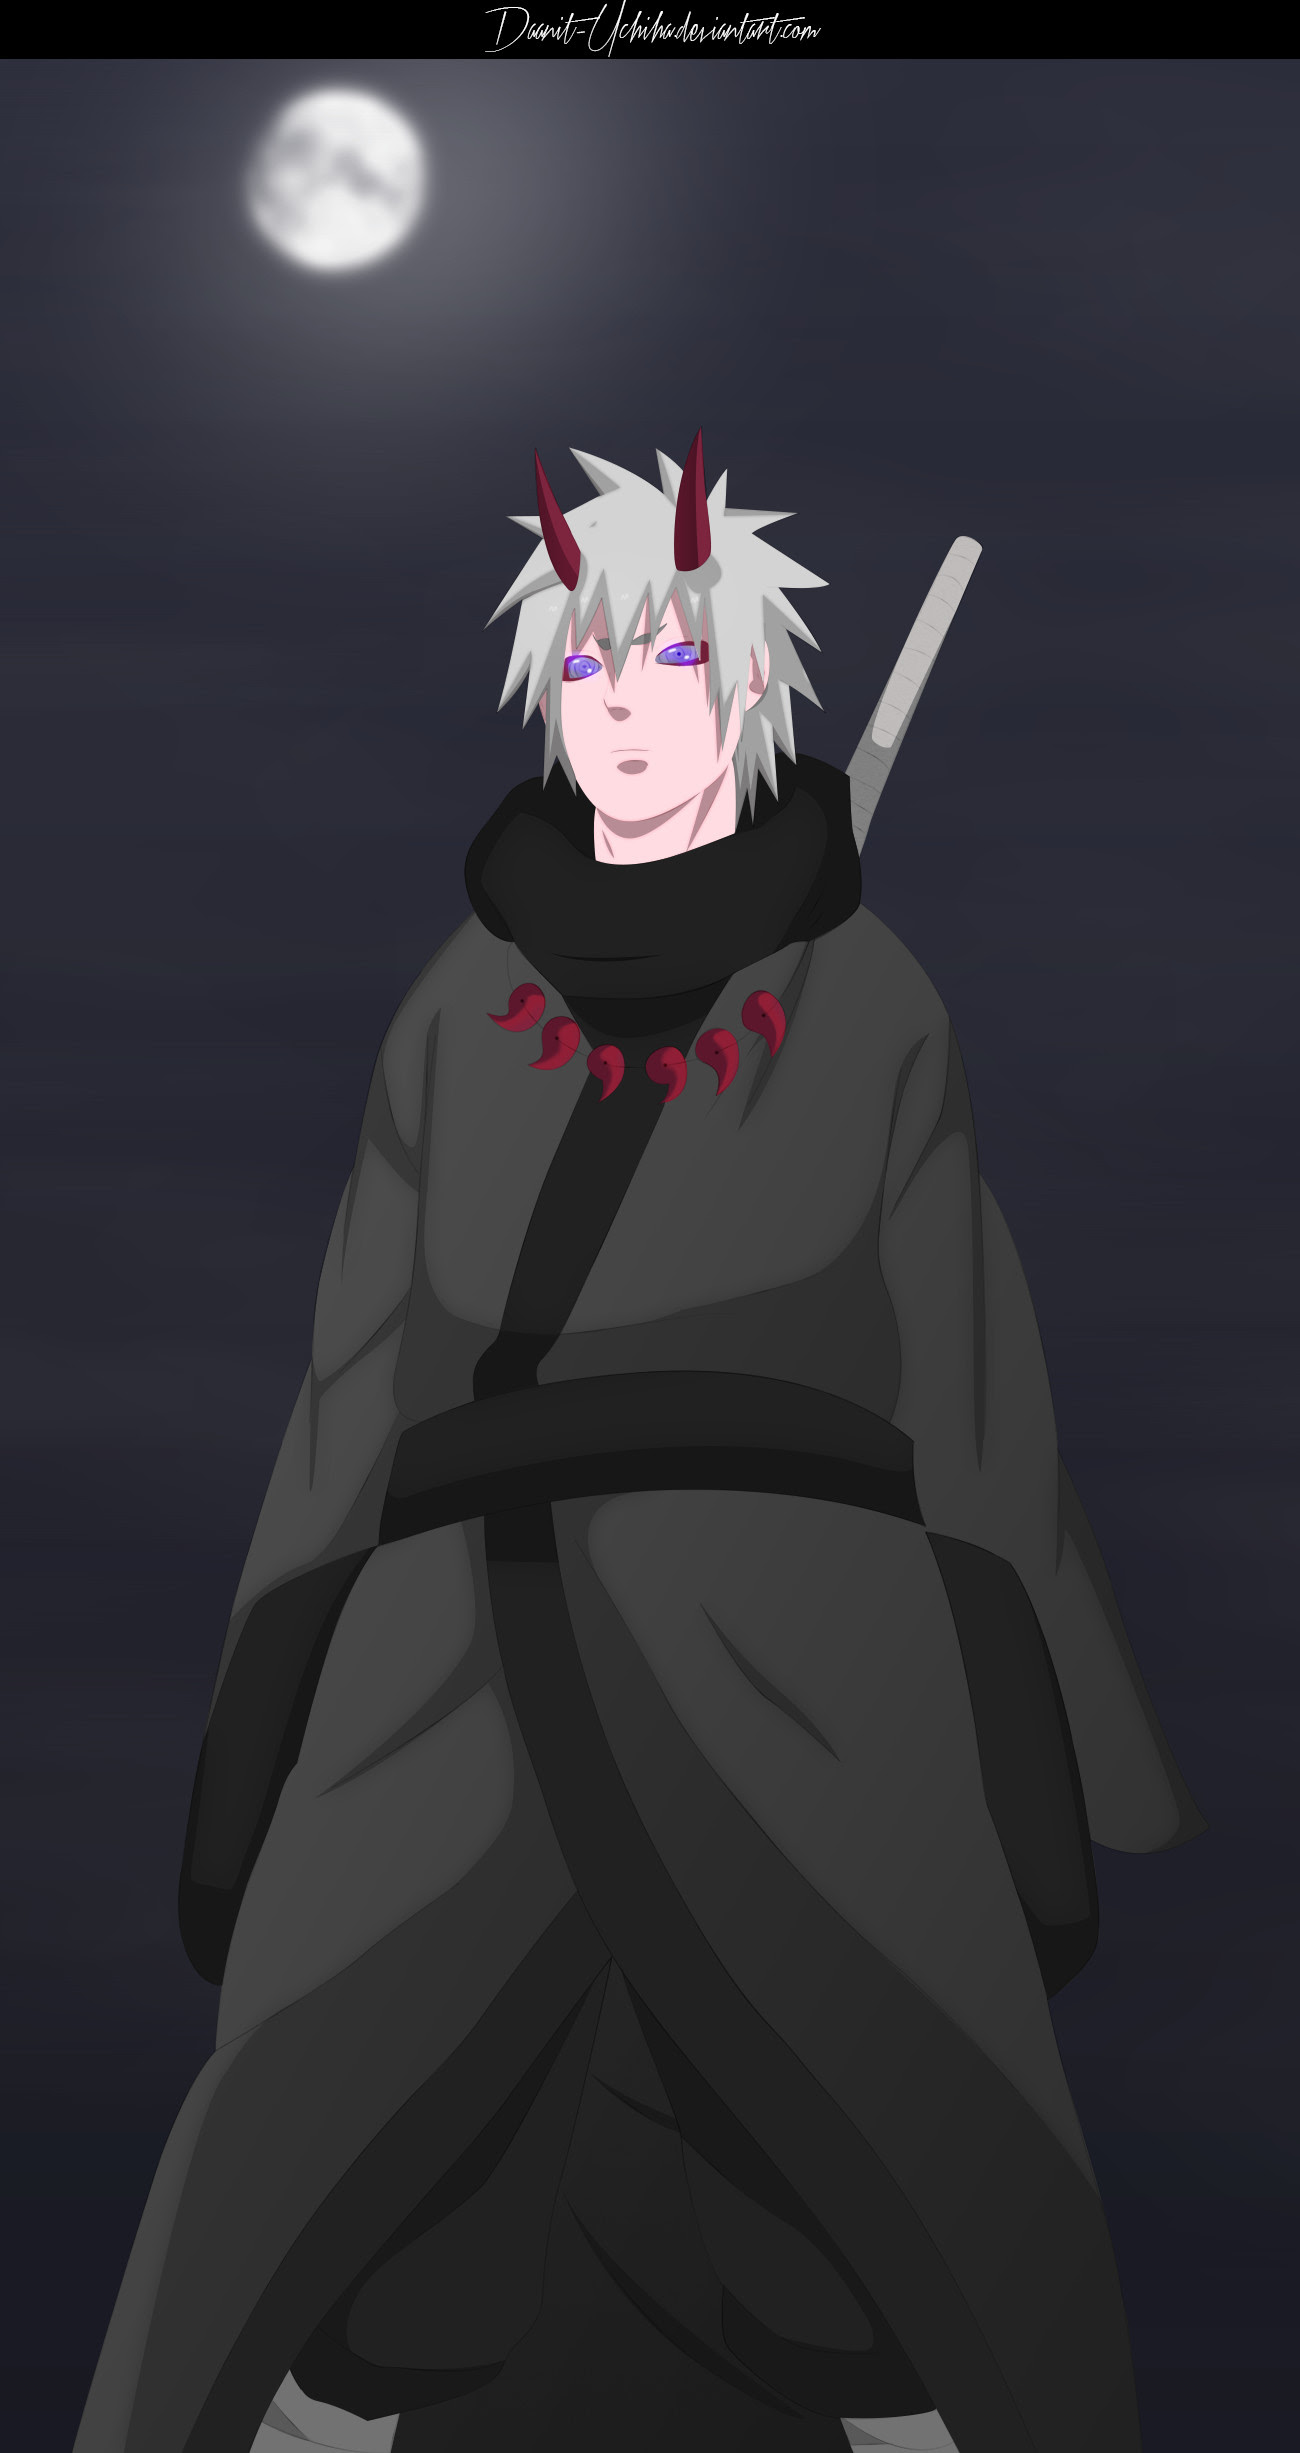 Unduh 9000+ Wallpaper Naruto Mode Rikudou HD Gratis